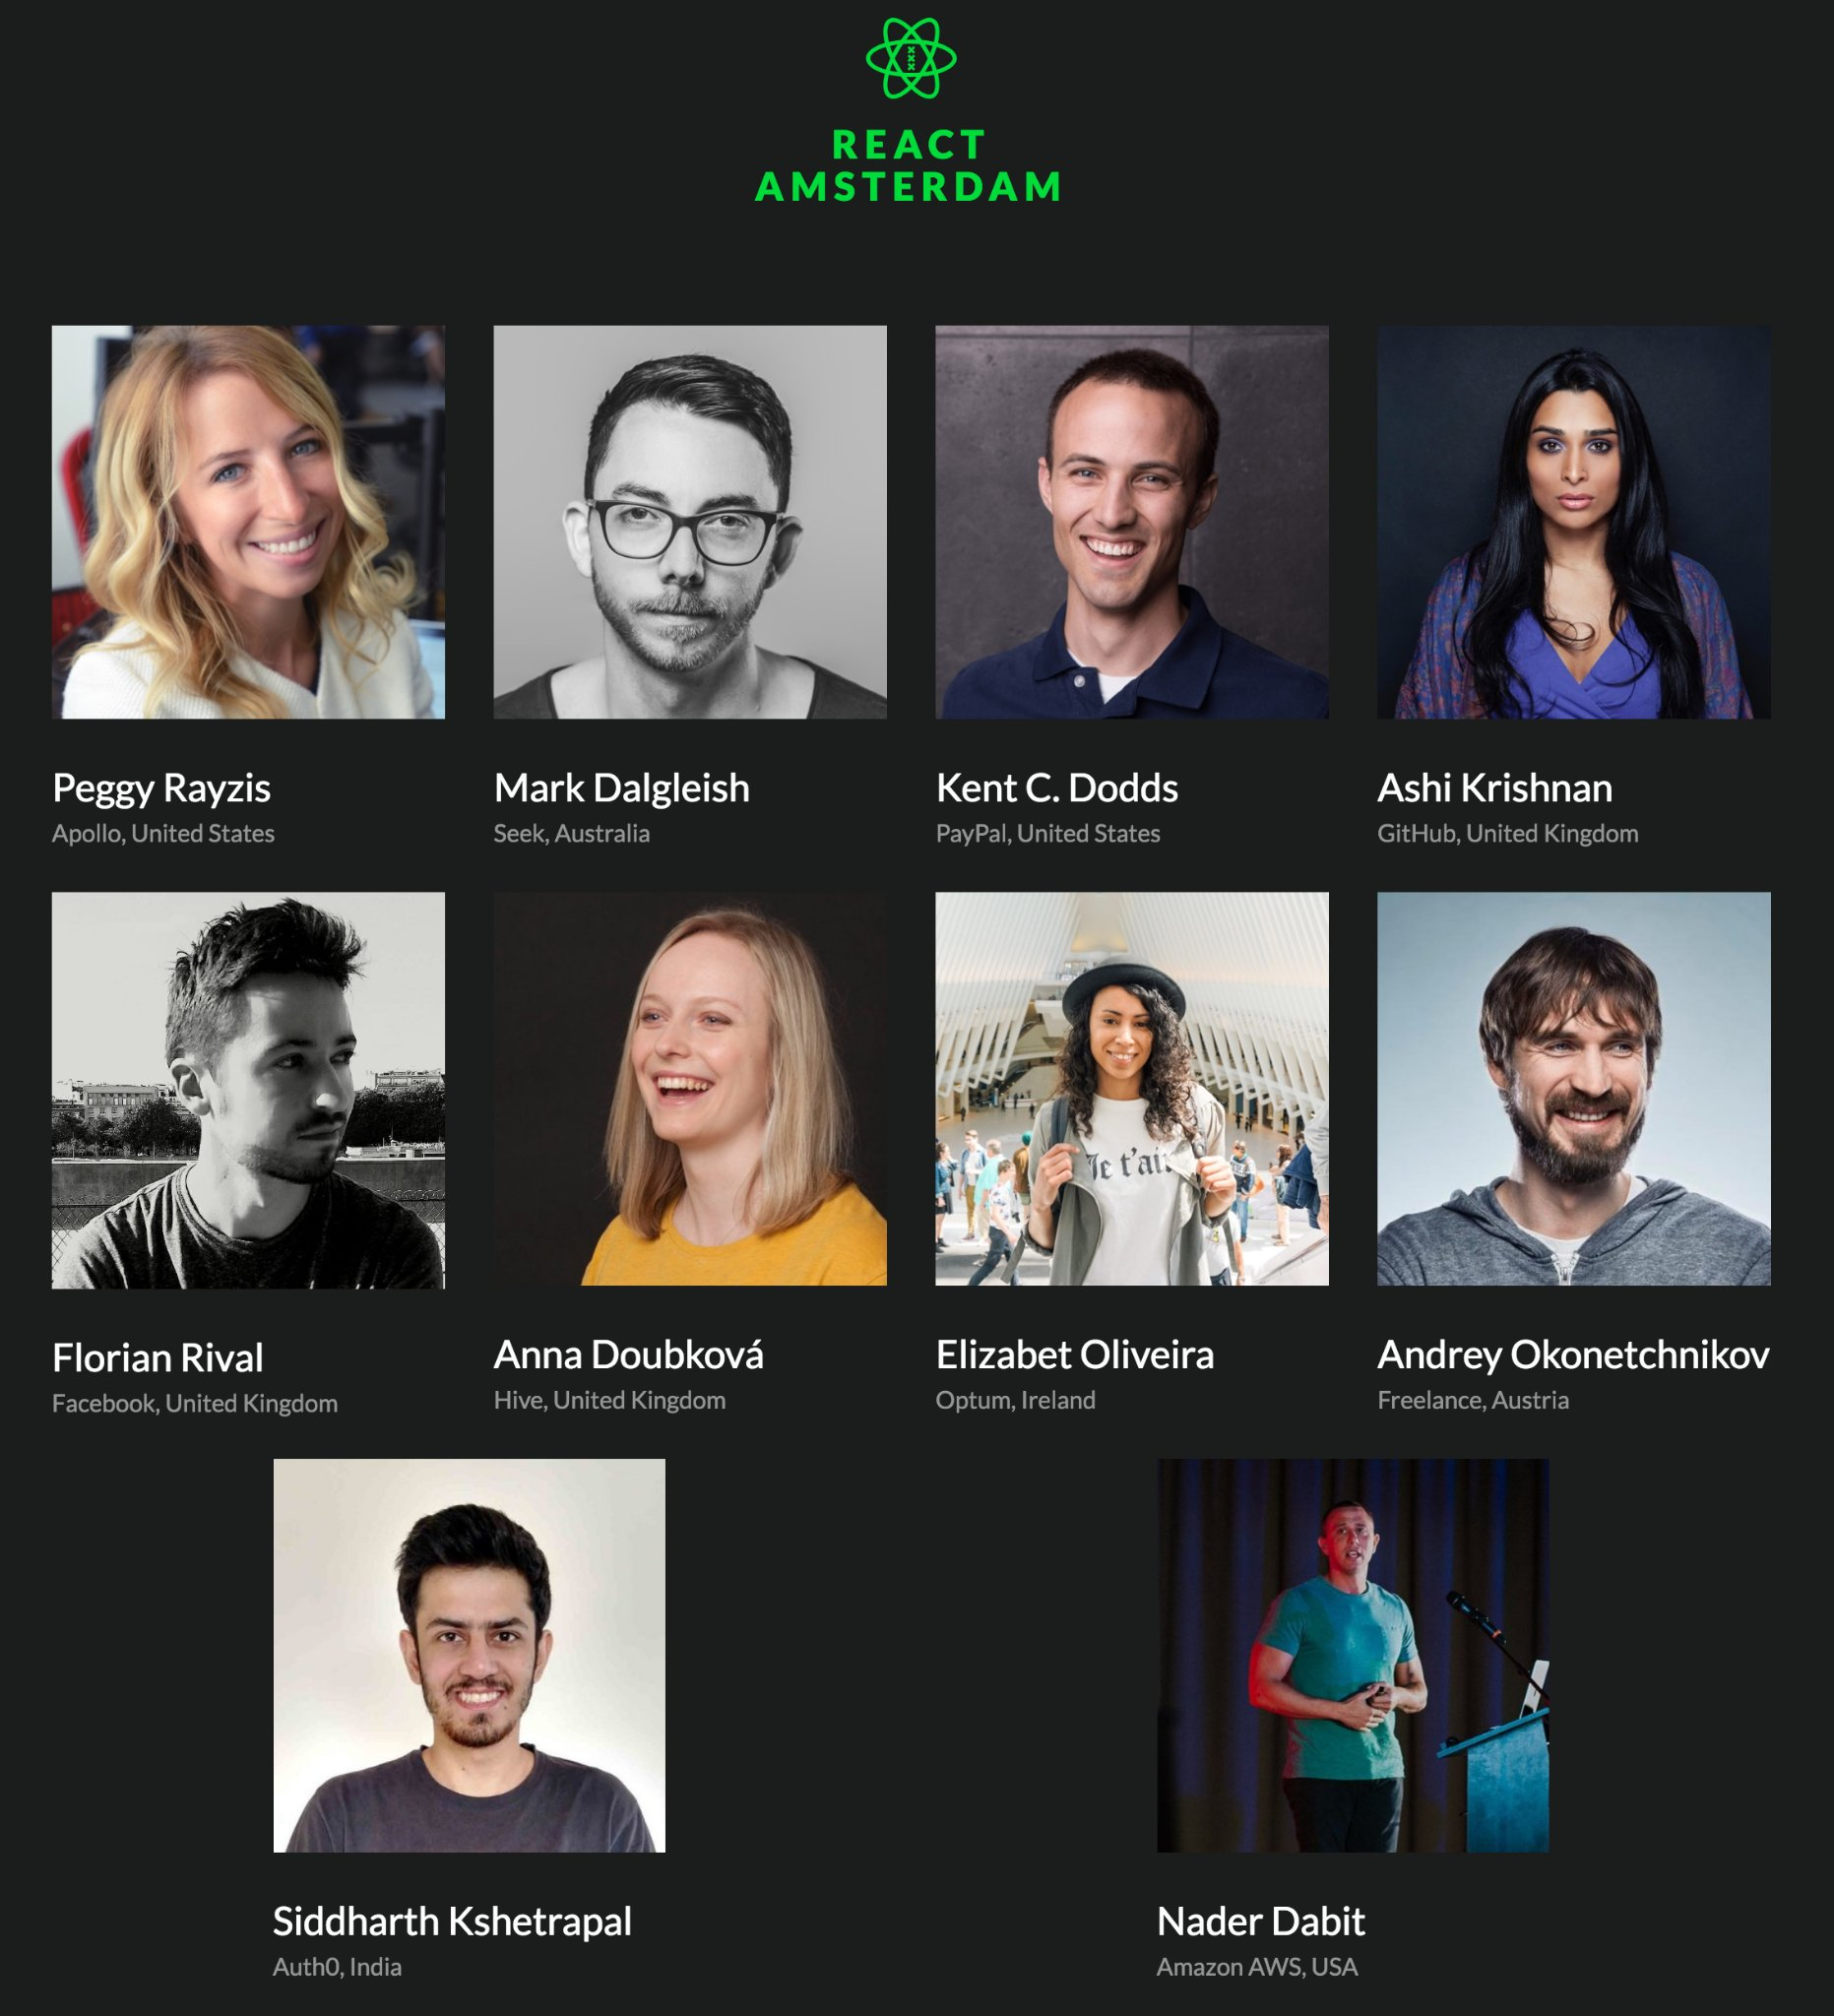 list of speakers on the react Amsterdam website